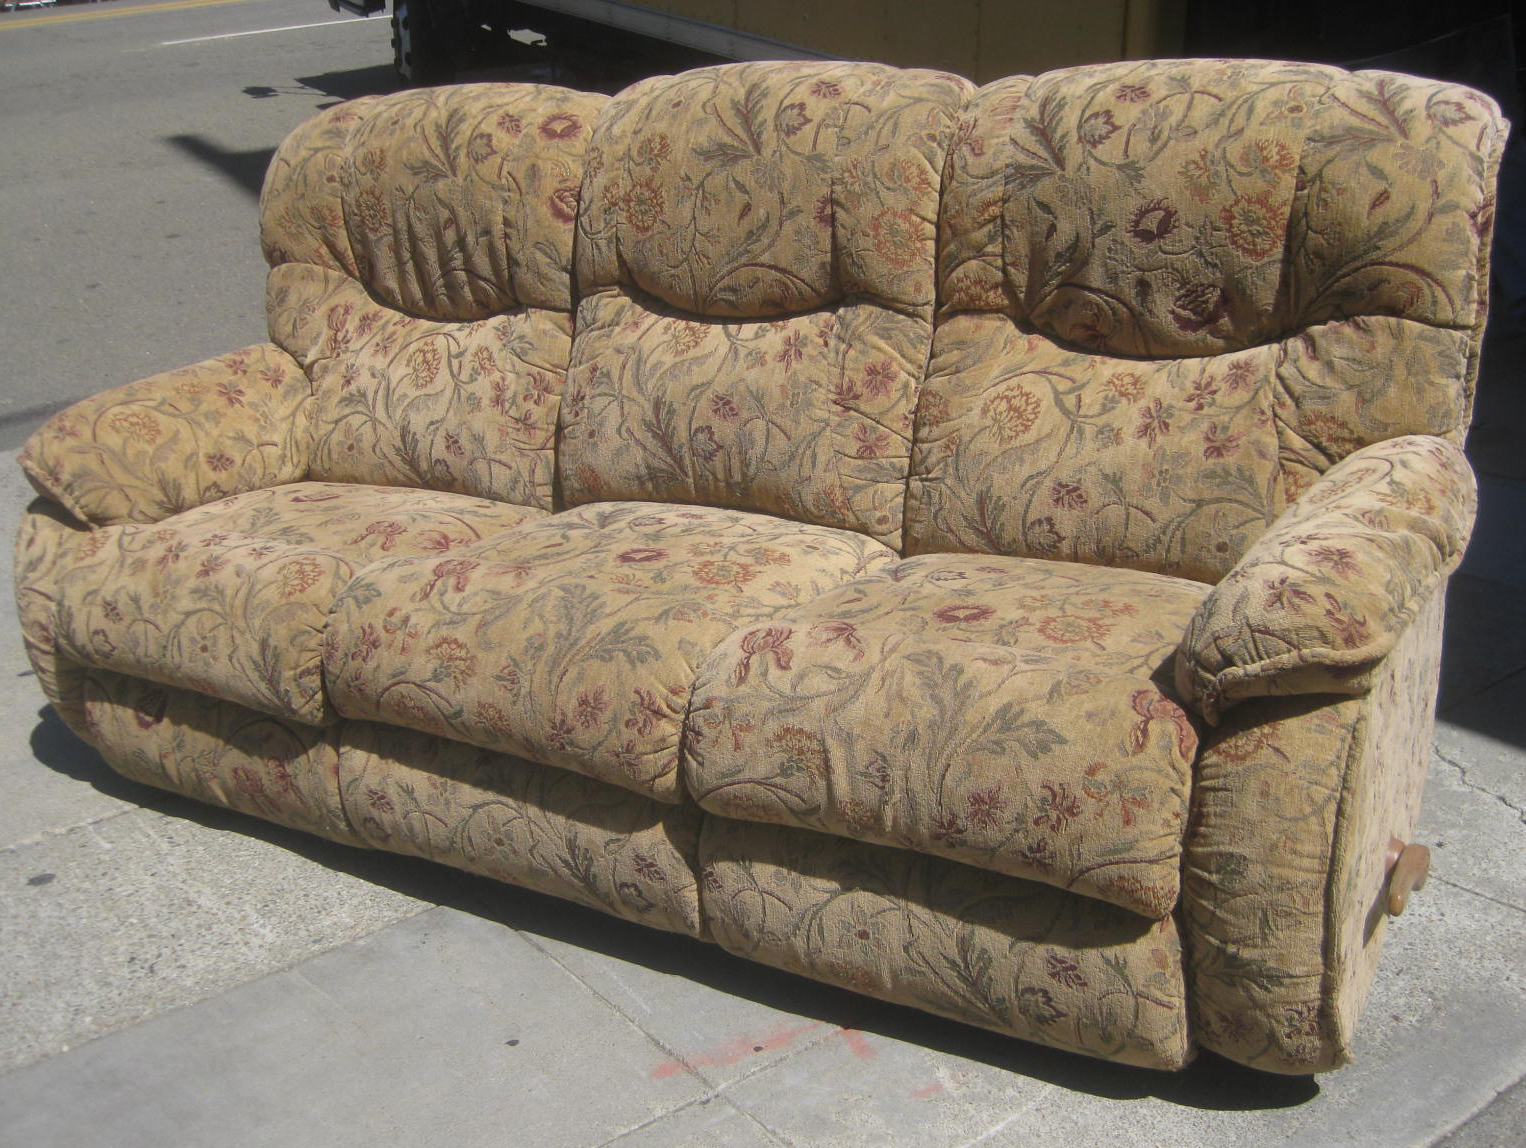 Uhuru furniture collectibles sold sofa with recliner for Sectional sofa with reclining ends